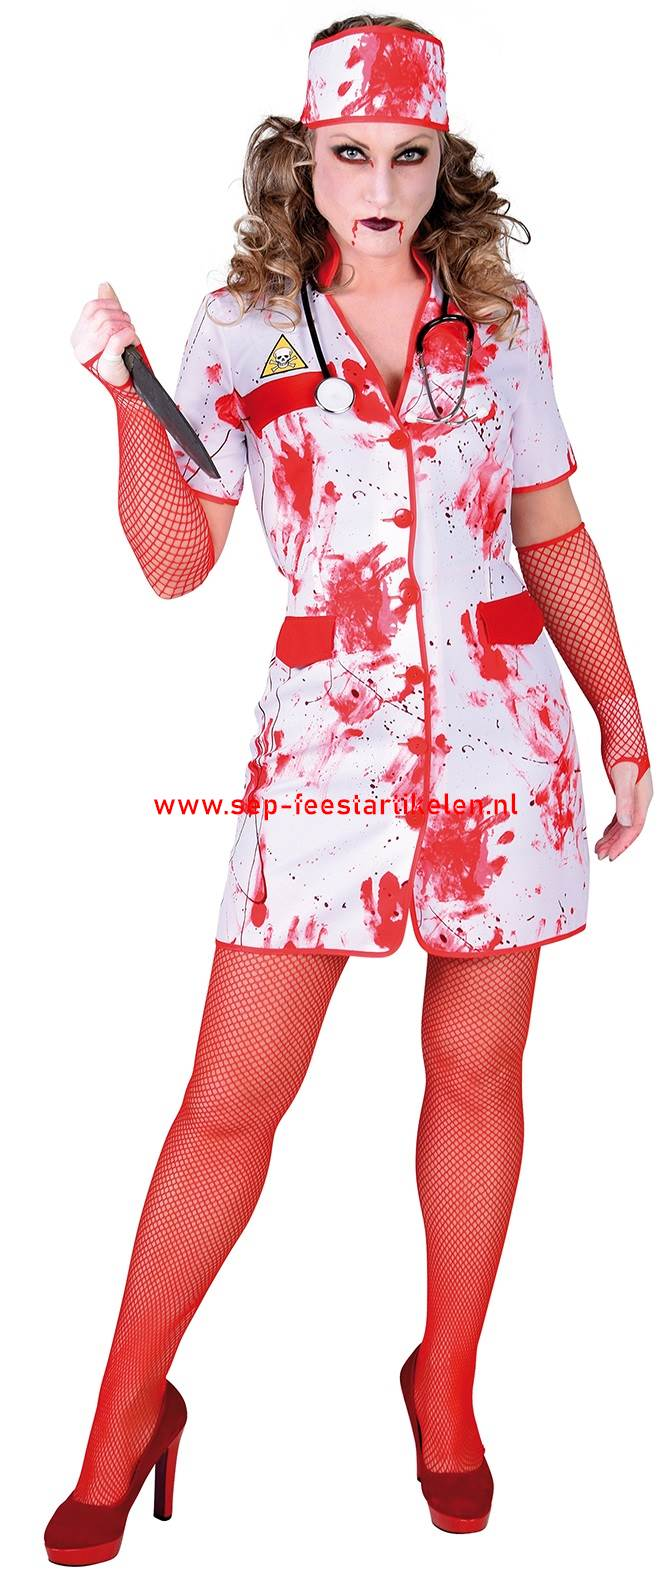 3c84cade60e Bloody Halloween zuster pakje 2dlg. direct leverbaar! - SEP ...